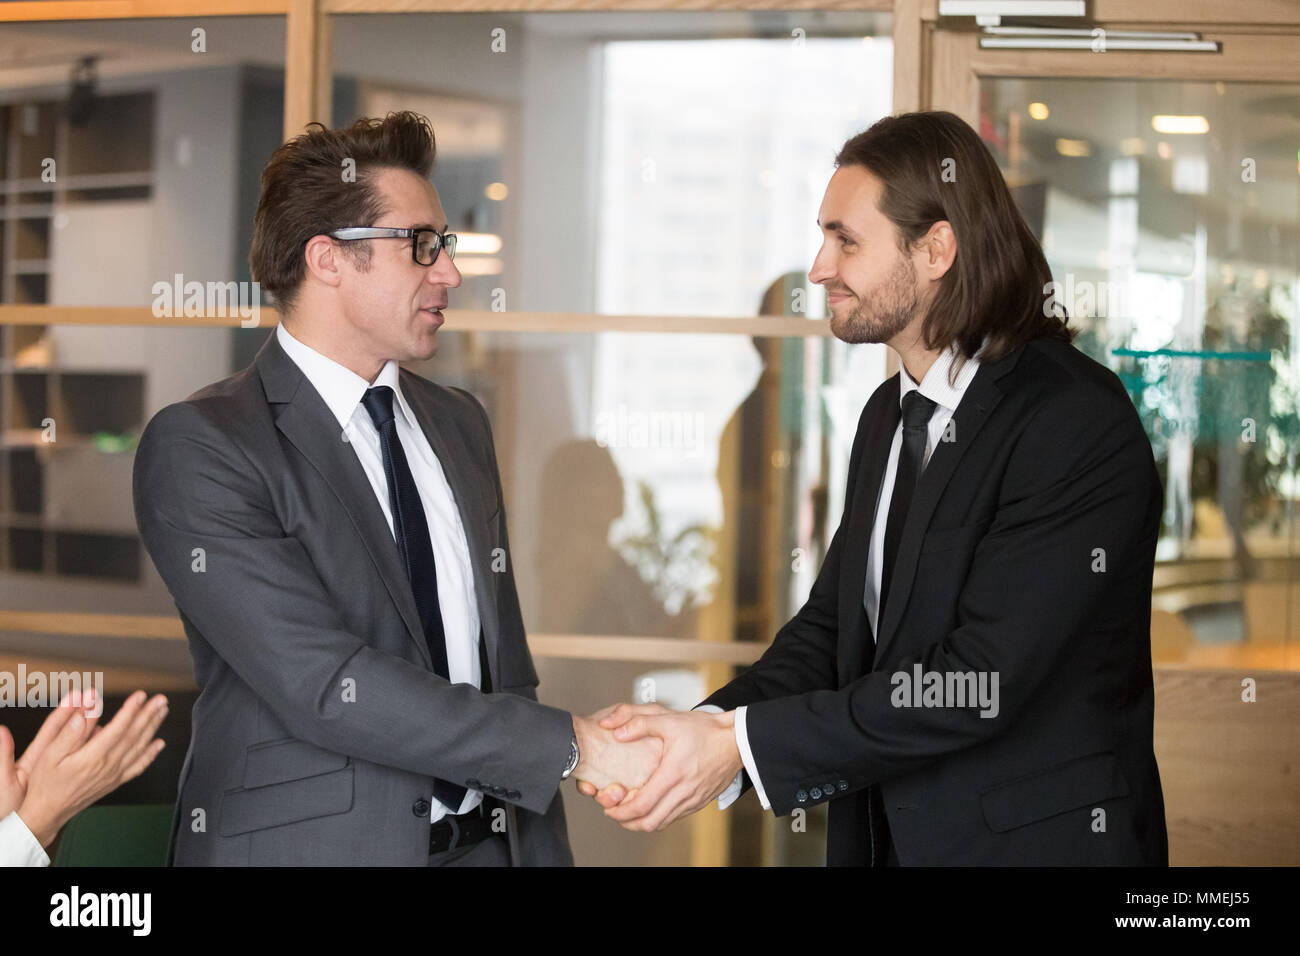 Smiling businessmen shaking hands, making deal, gratitude or pro - Stock Image